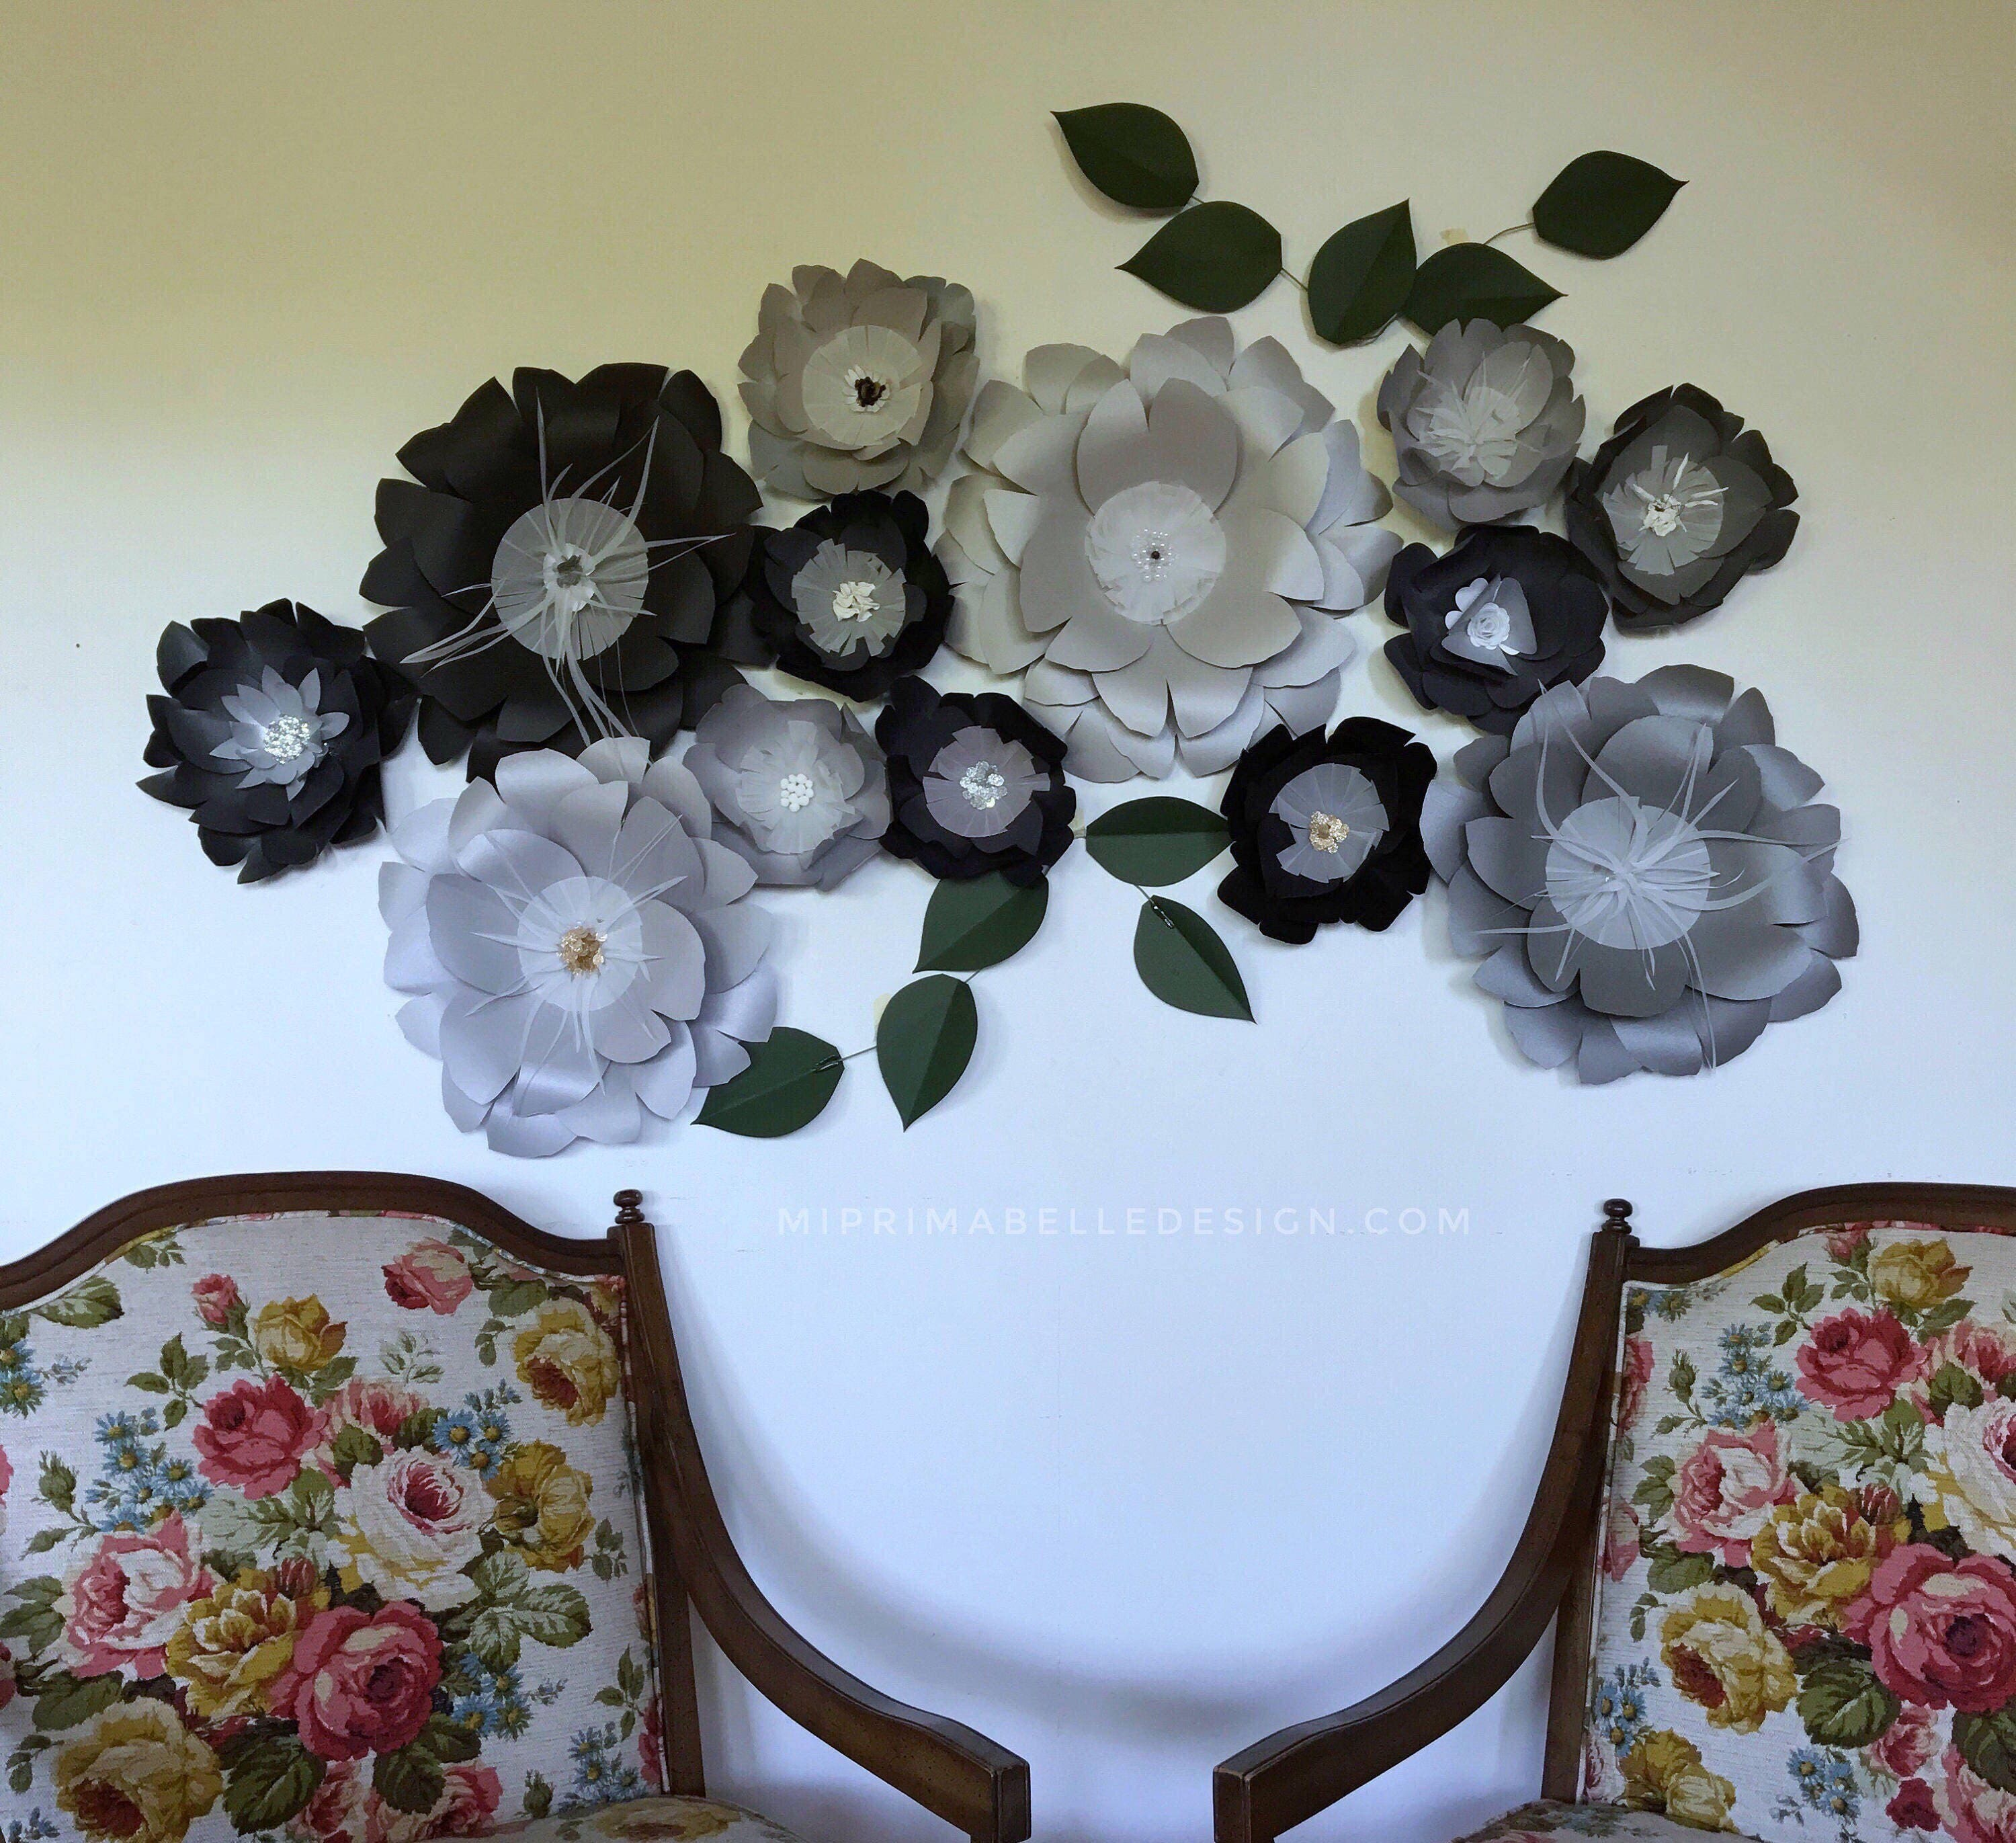 Black paper flowers black wall decor black giant flowers black wall black paper flowers black wall decor black giant flowers black wall decor large paper flowers black flower backdrop black wedding backdrop mightylinksfo